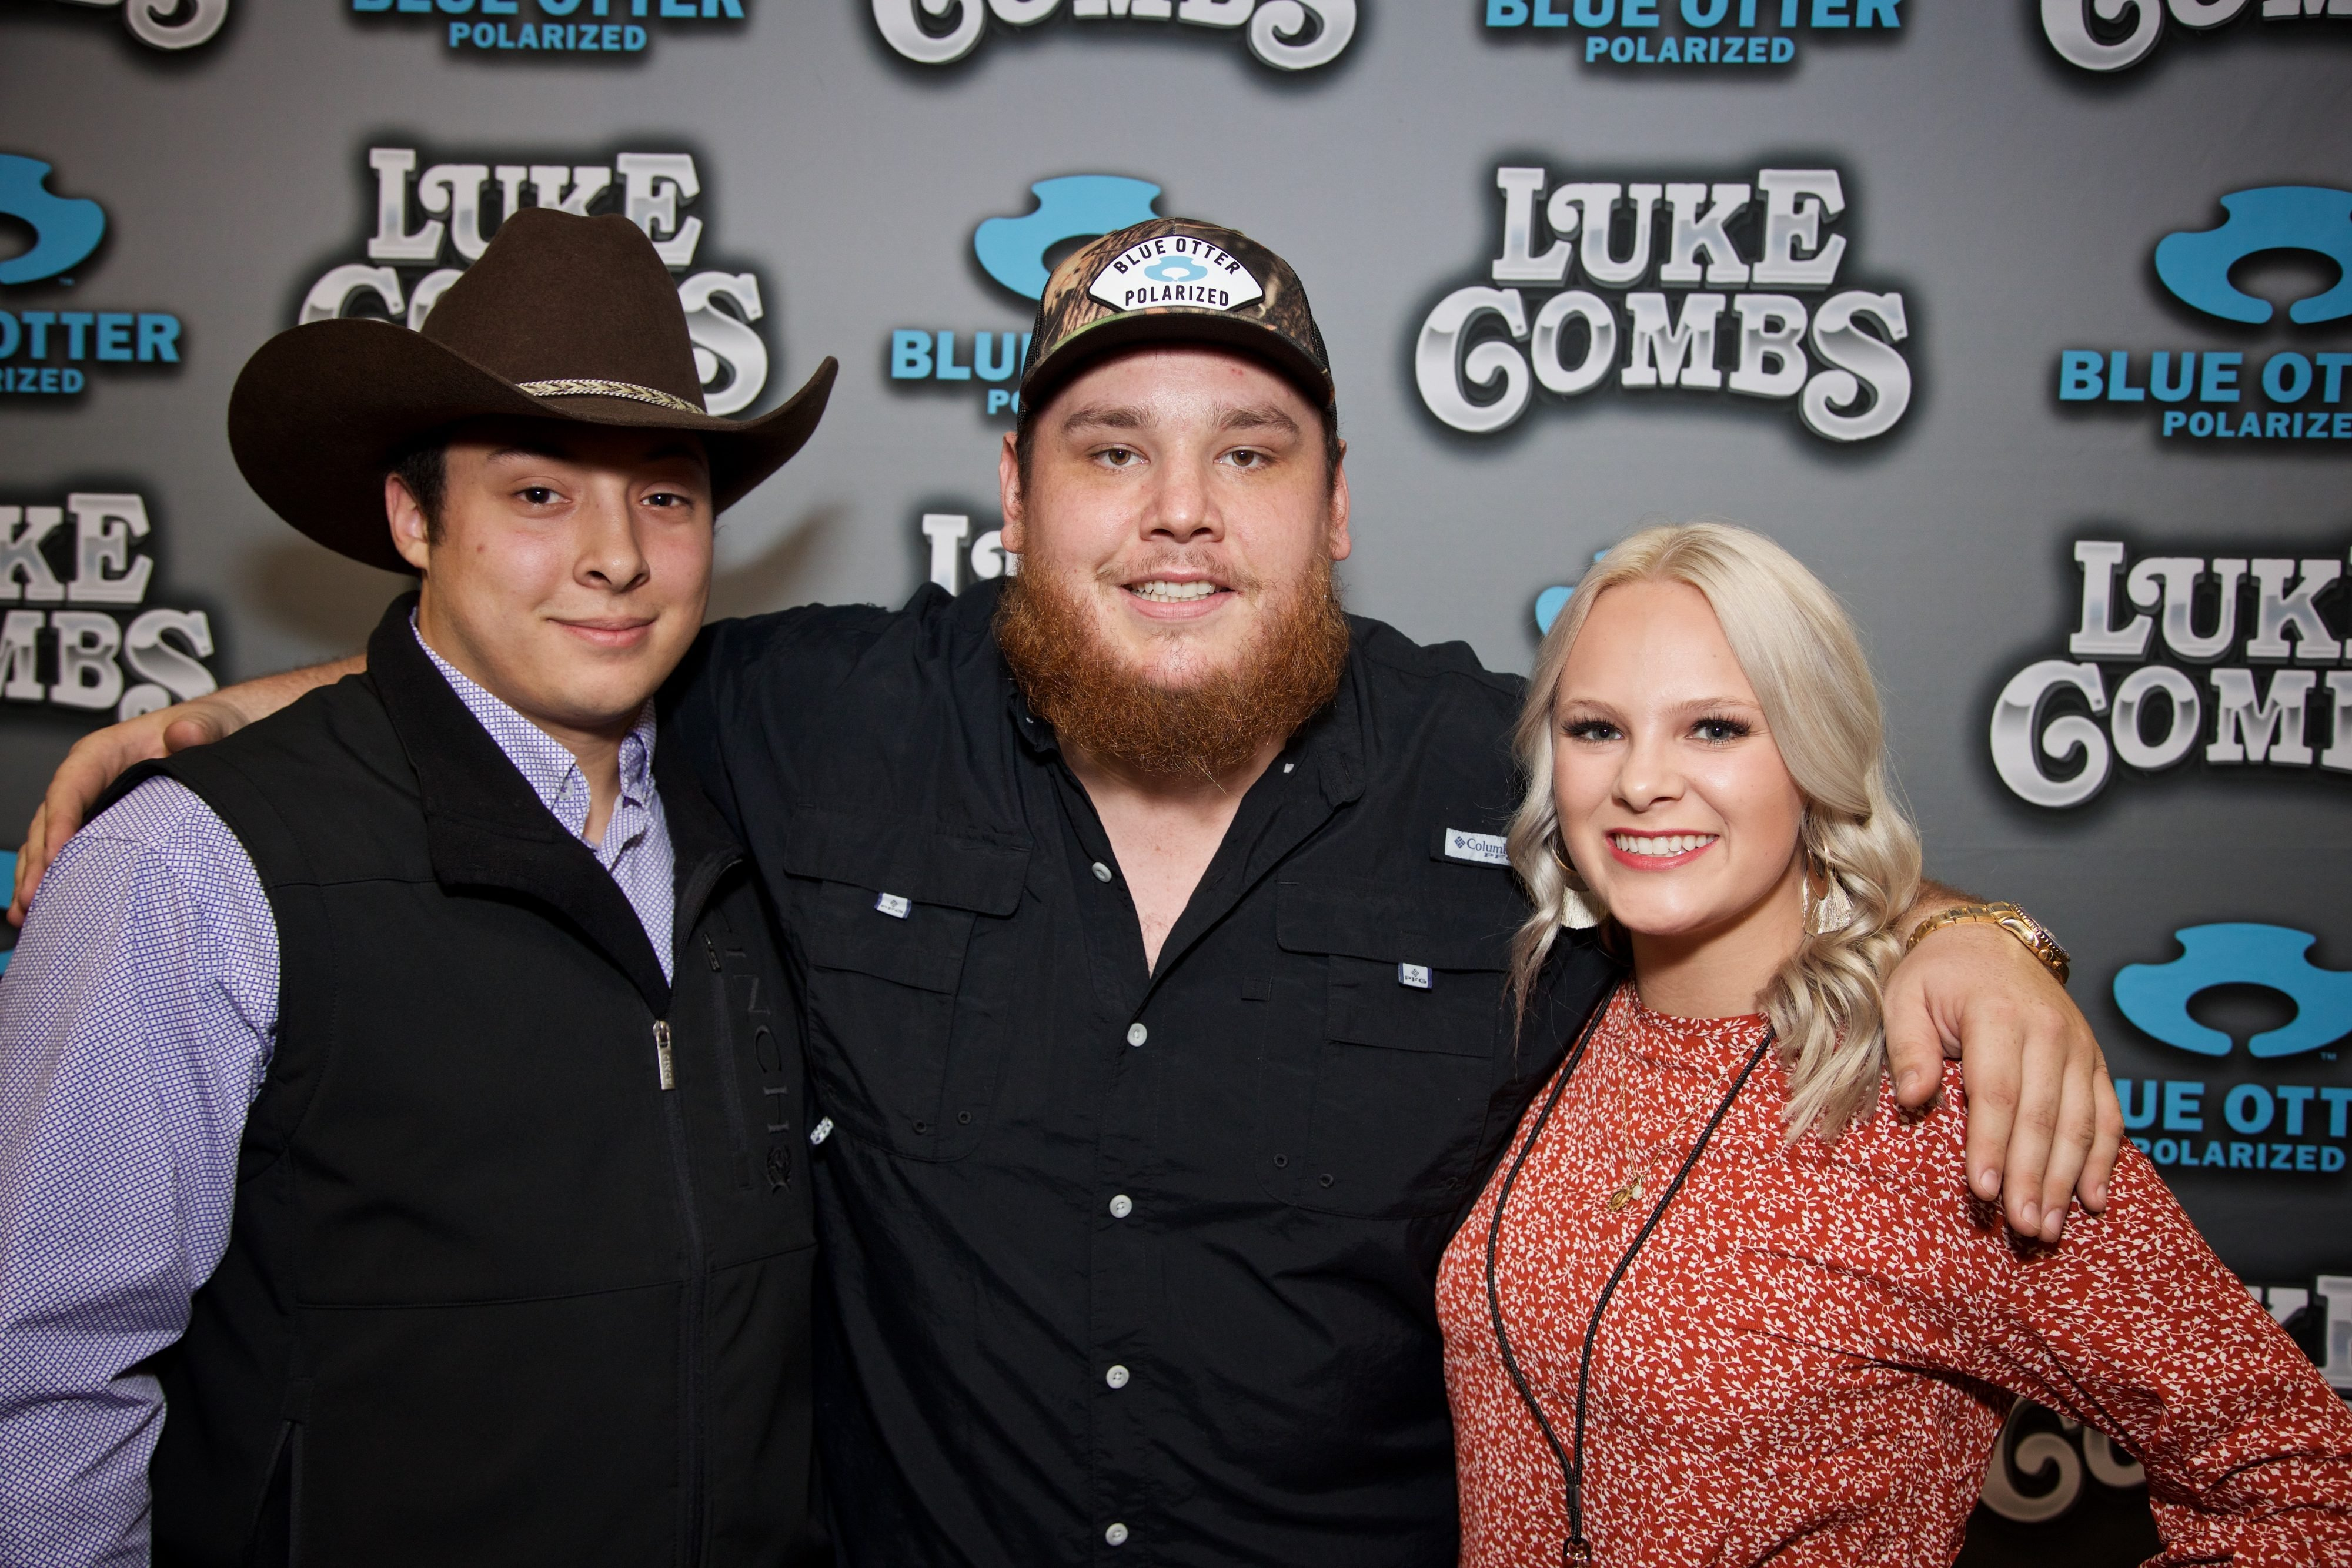 20191207_Luke_Combs_San_Antonio_0158